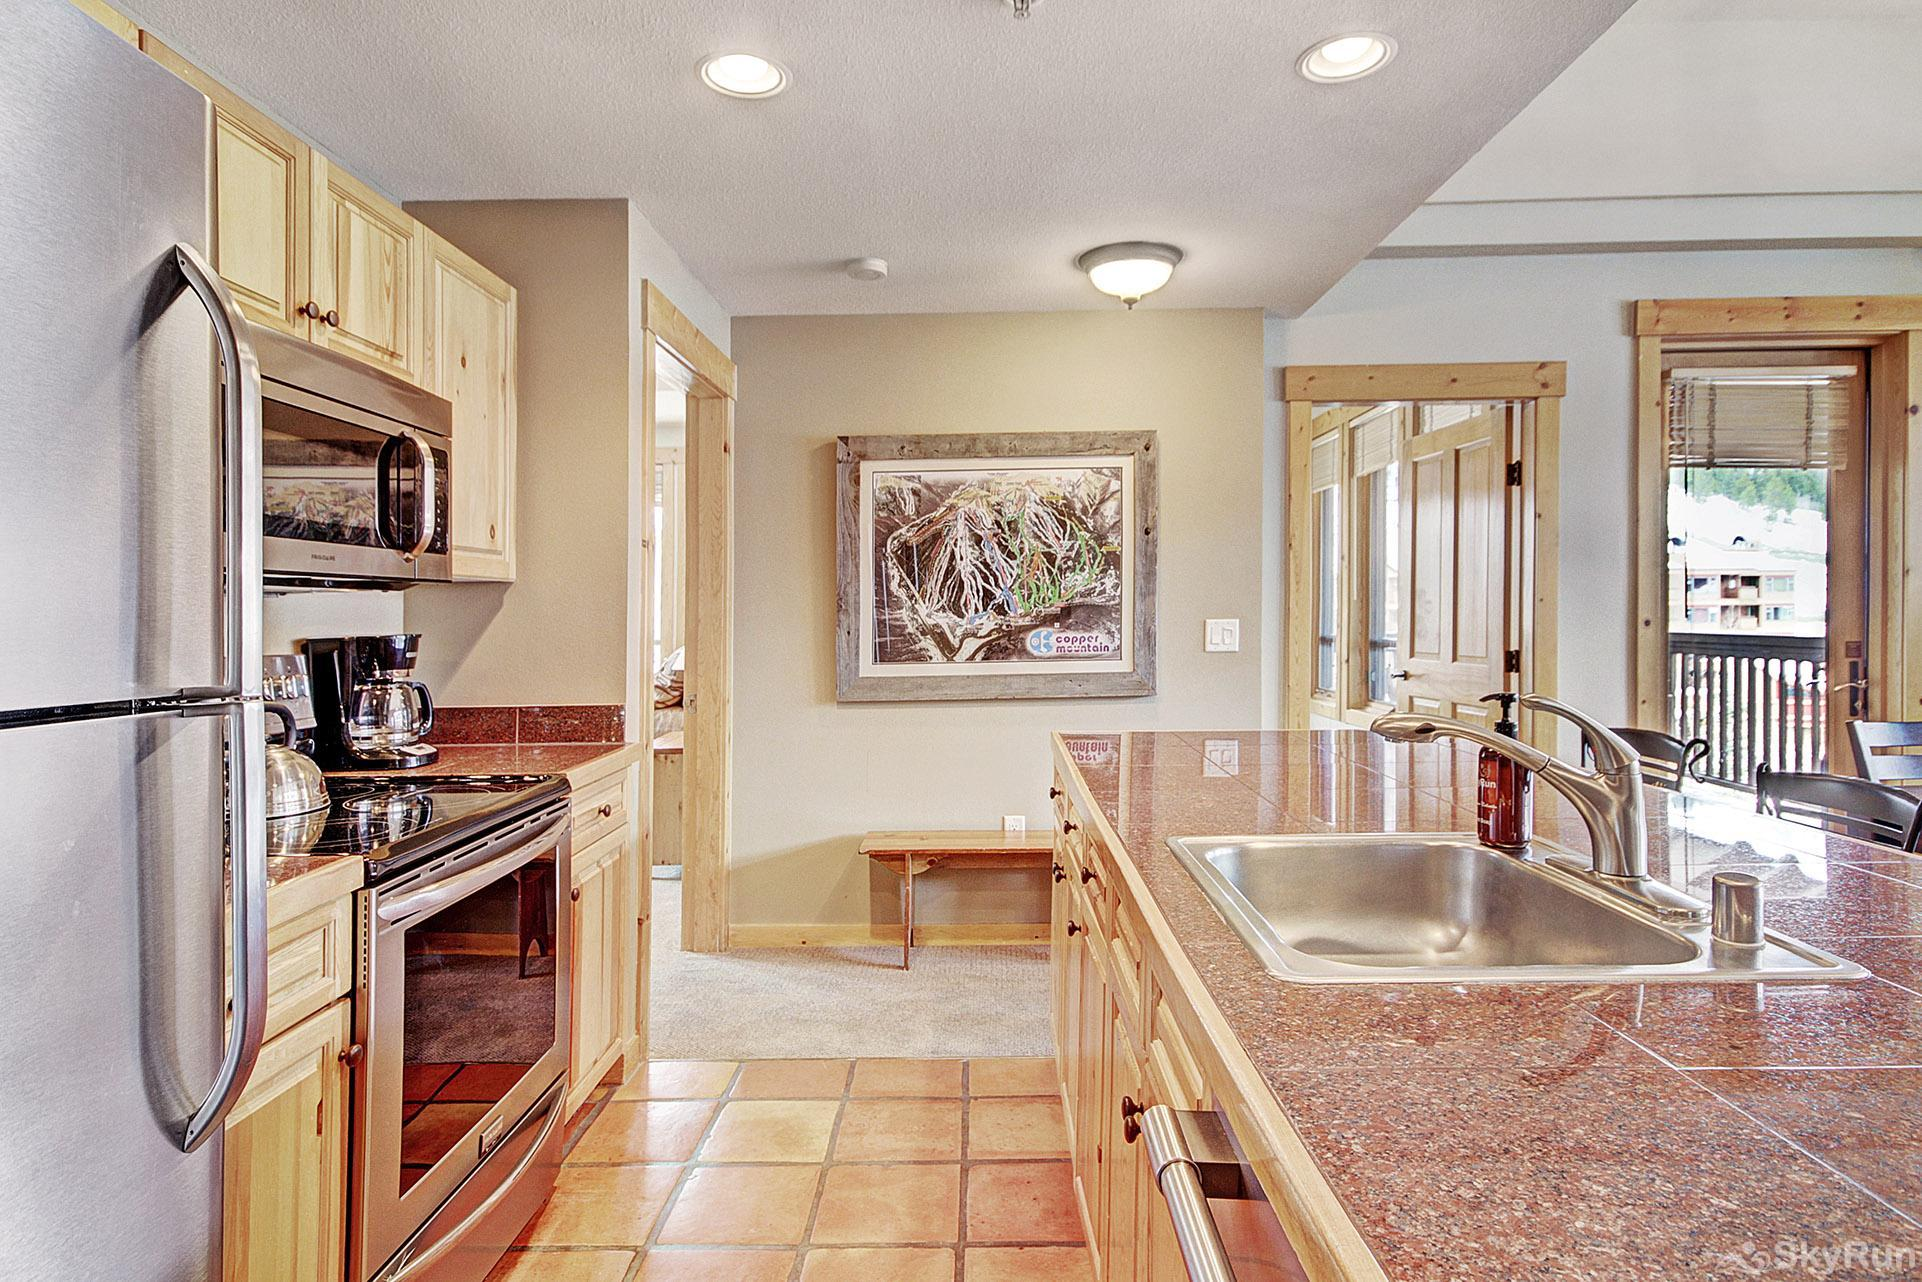 TX304 Taylors Crossing Beautiful Fully Equipped Kitchen